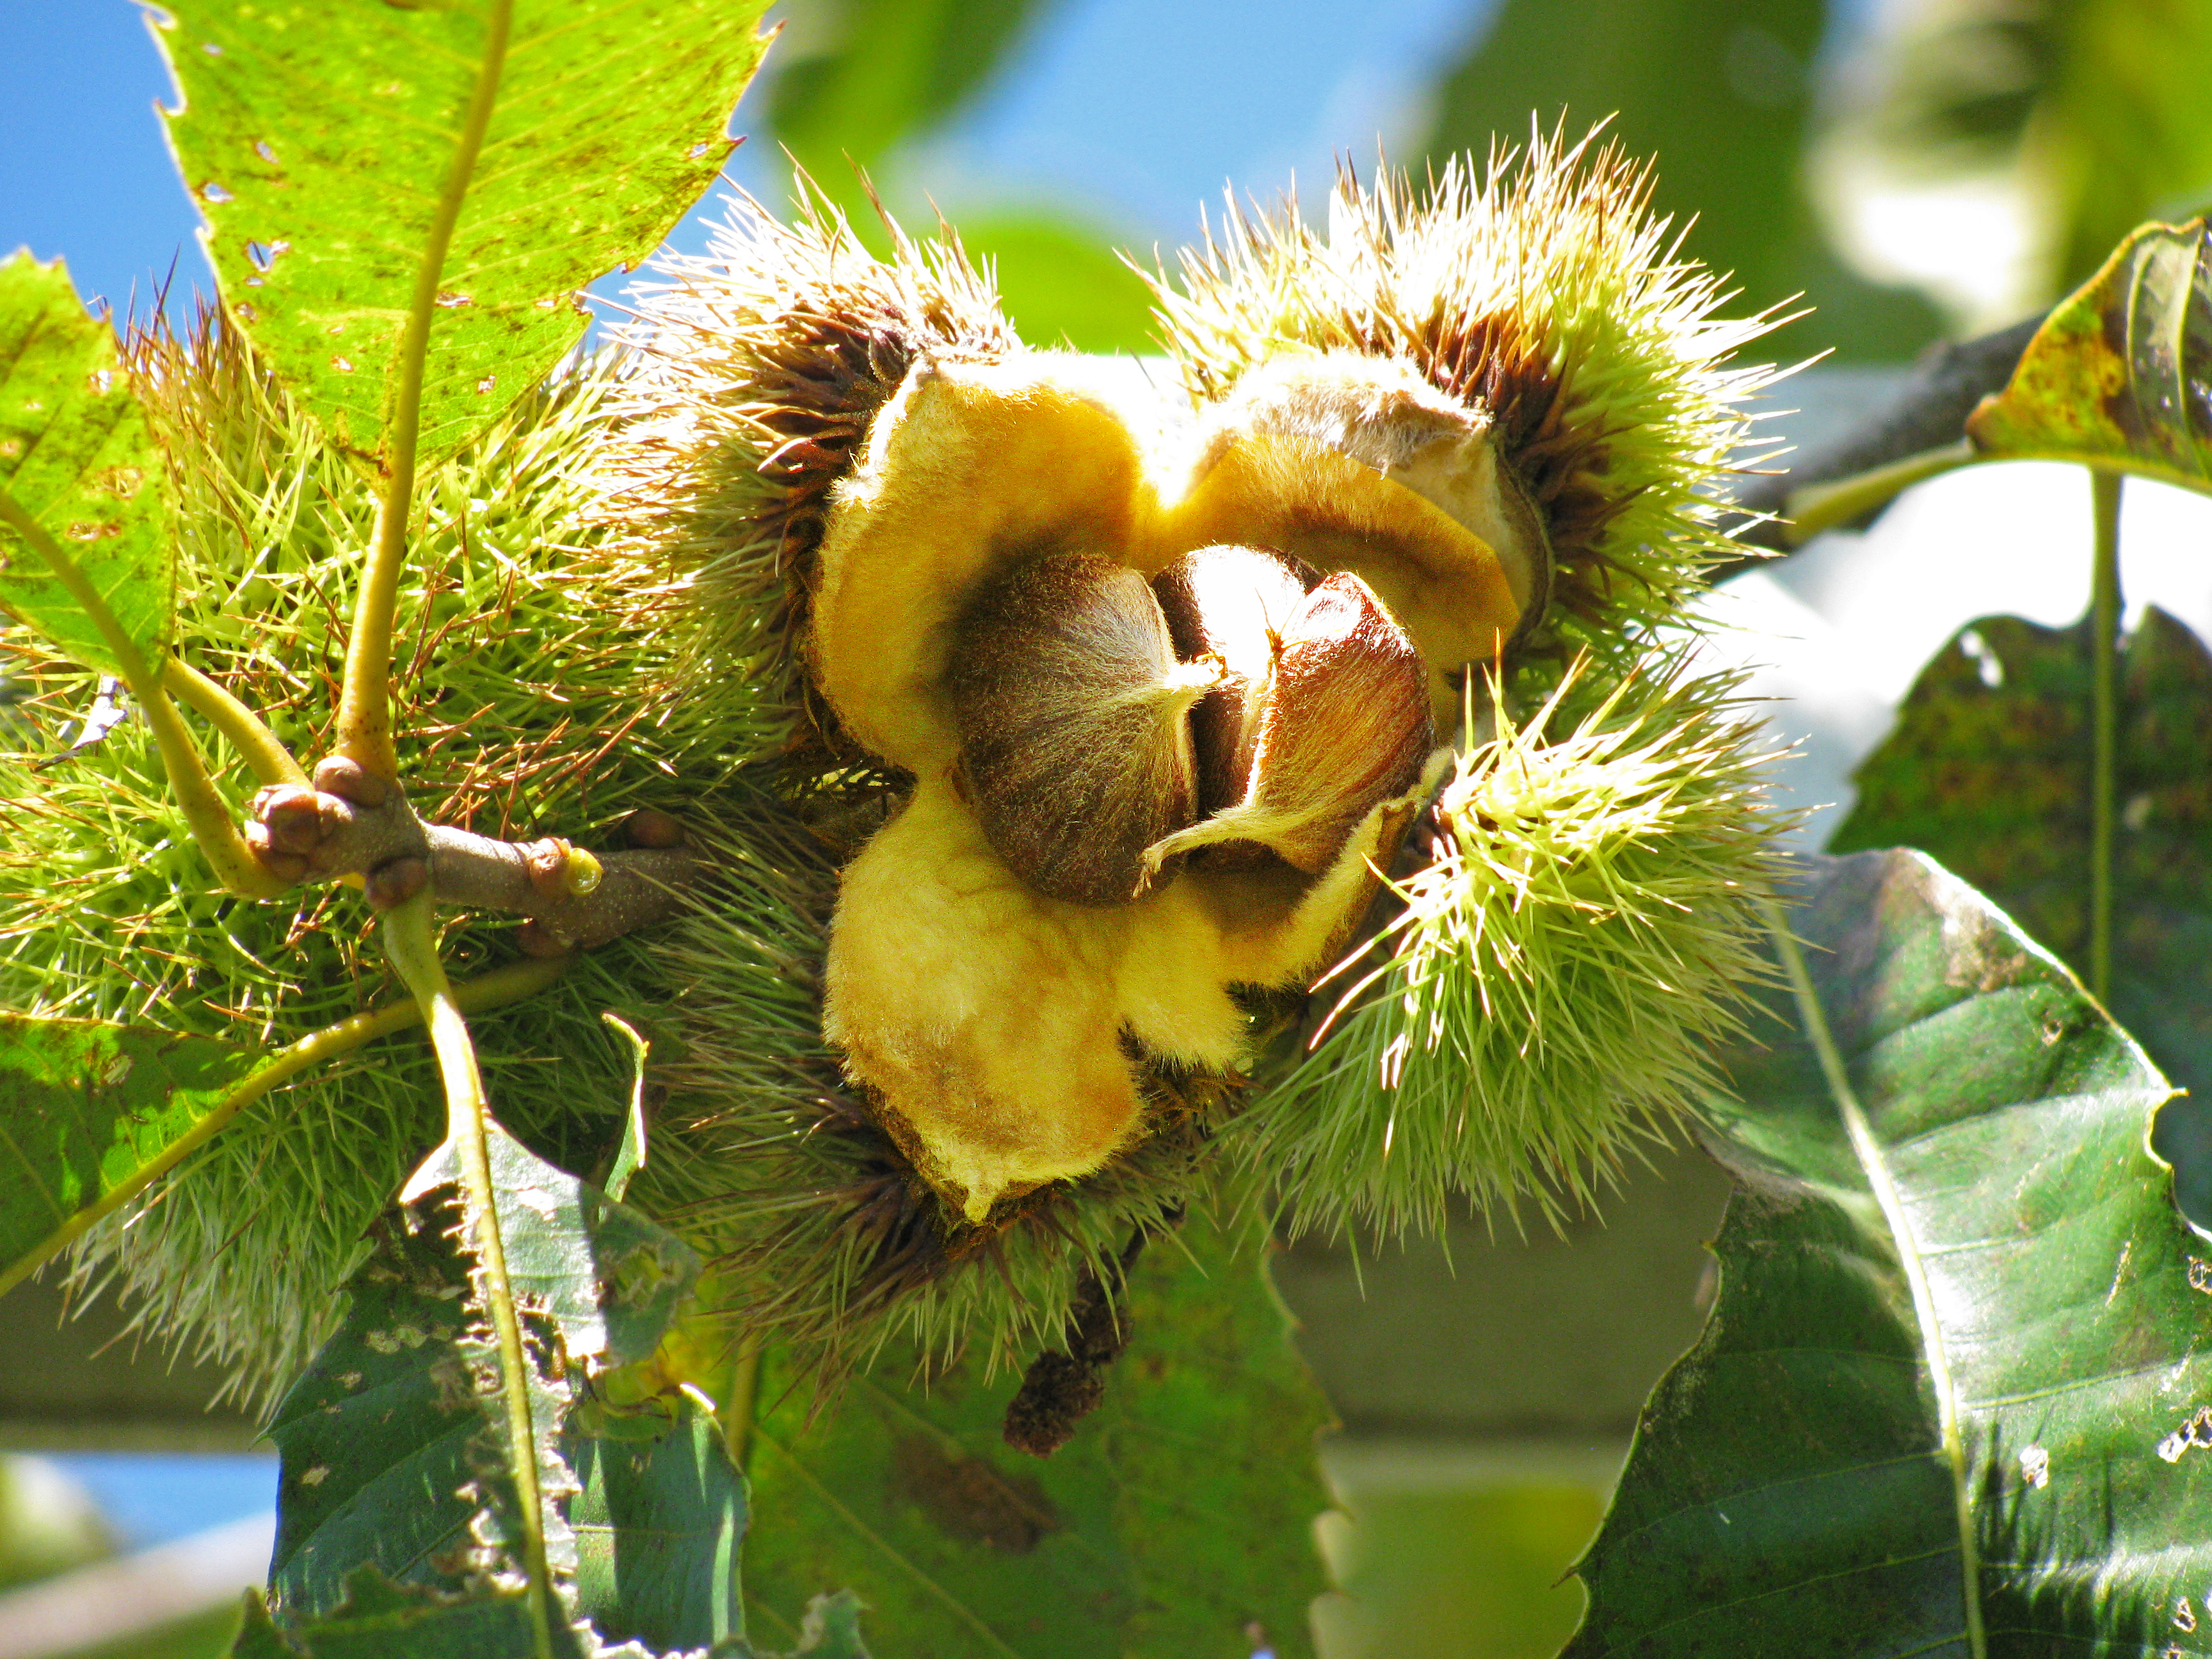 Photo Credit: Courtesy of The American Chestnut Foundation